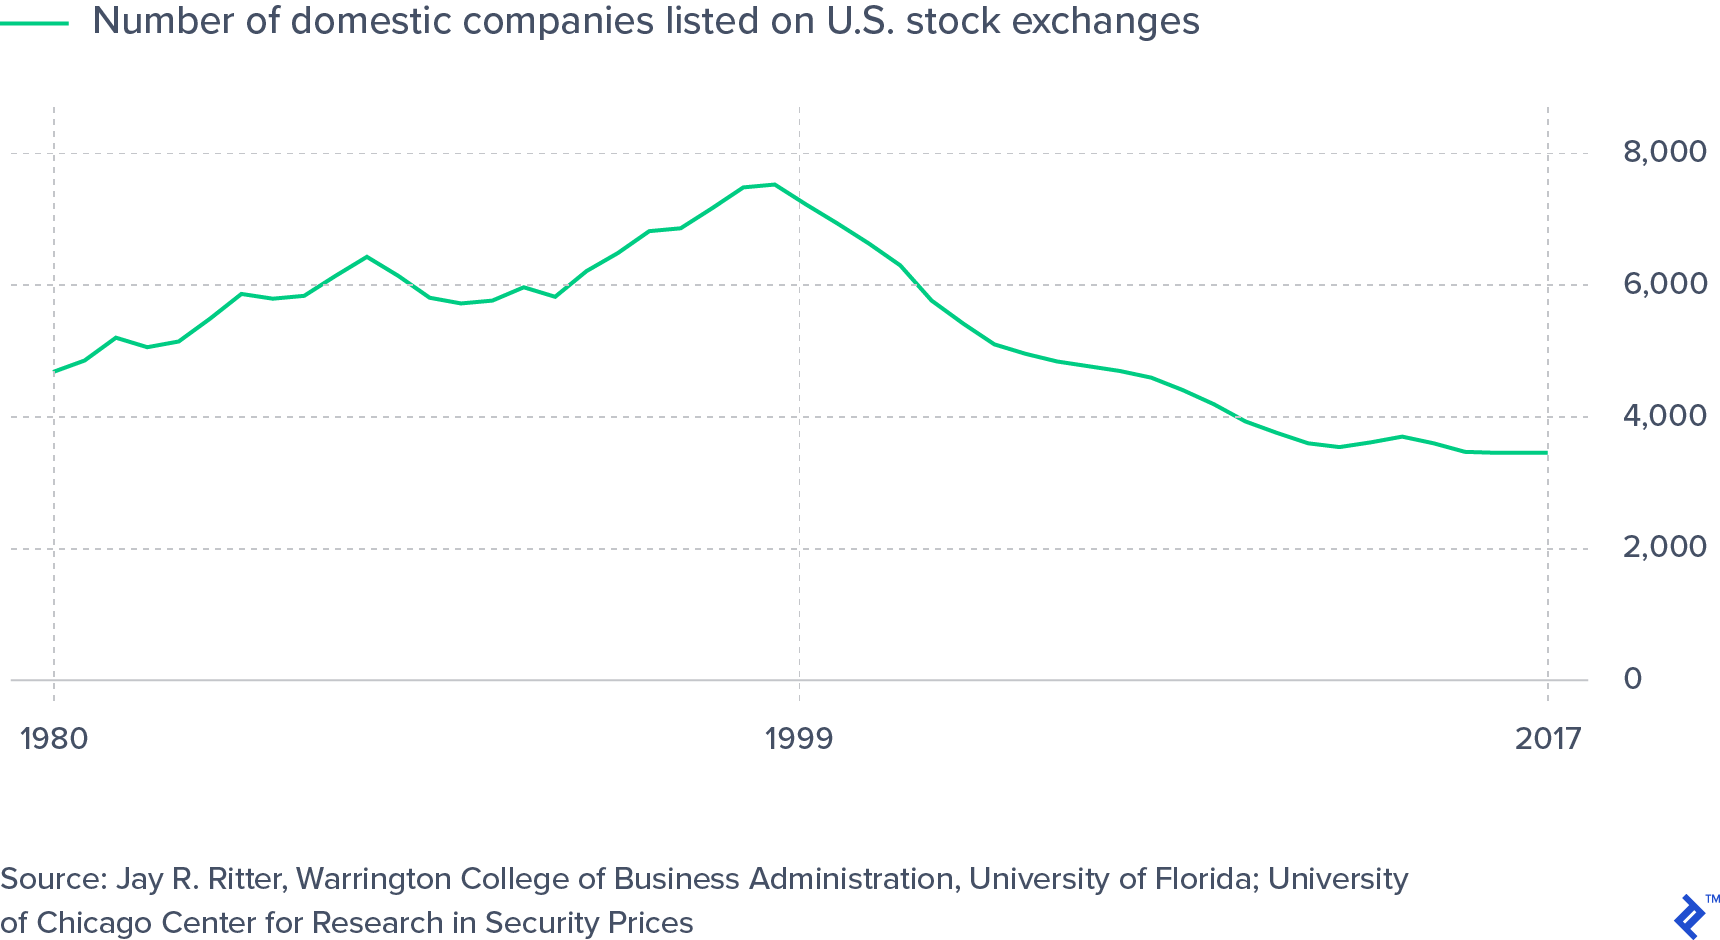 Number of Public Companies in the US